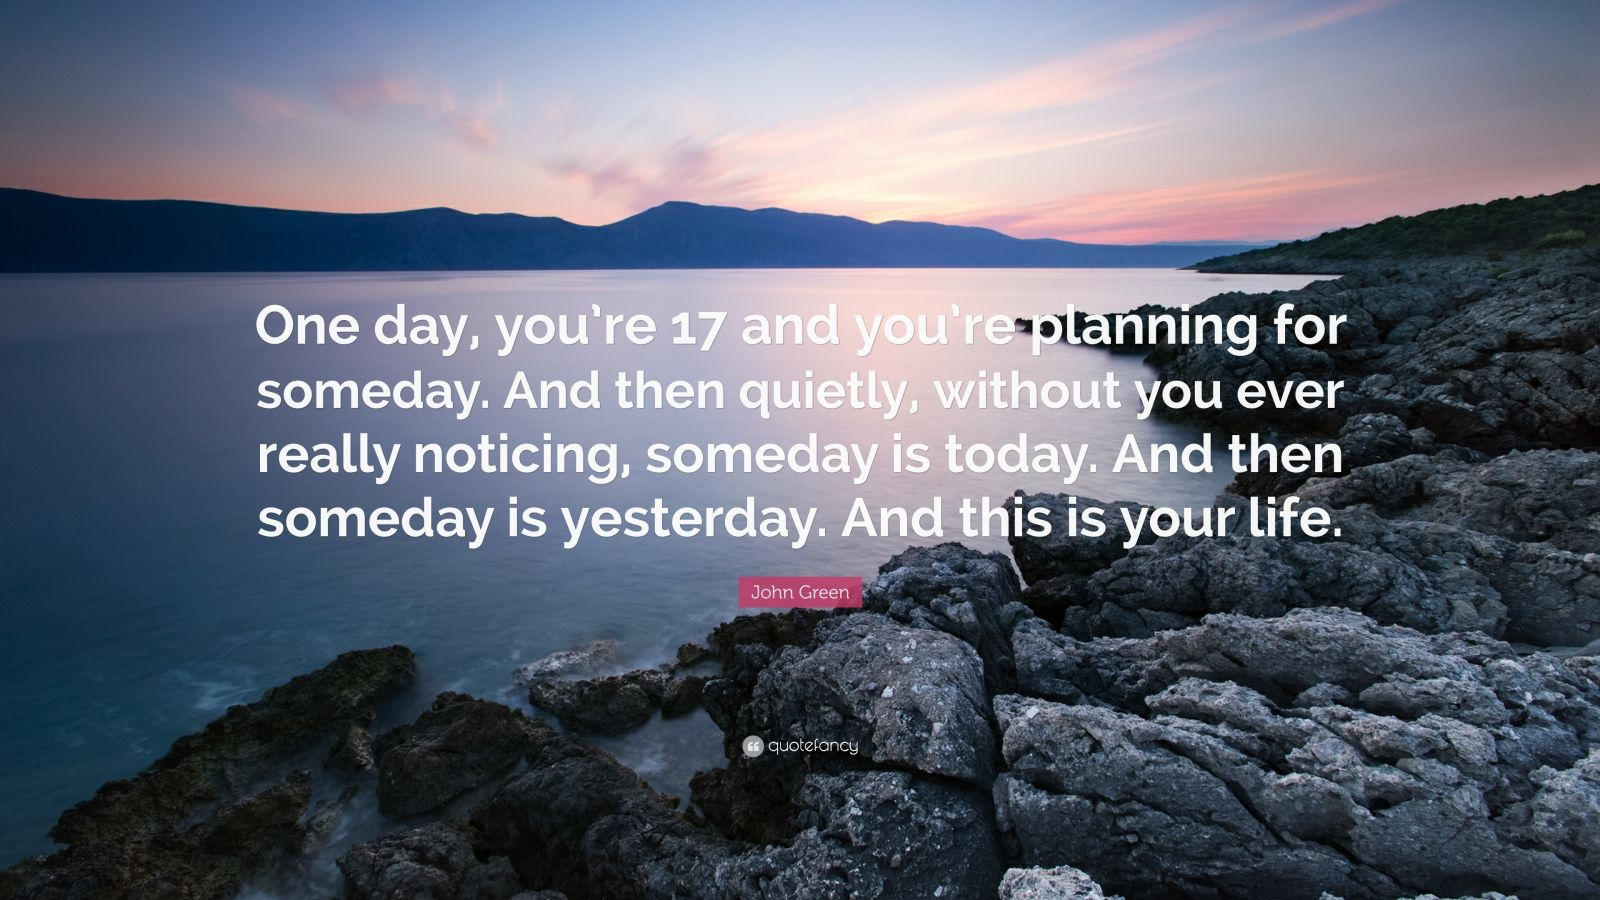 """John Green Quote: """"One day, you're 17 and you're planning for someday. And then quietly, without you ever really noticing, someday is today. And then someday is yesterday. And this is your life."""""""